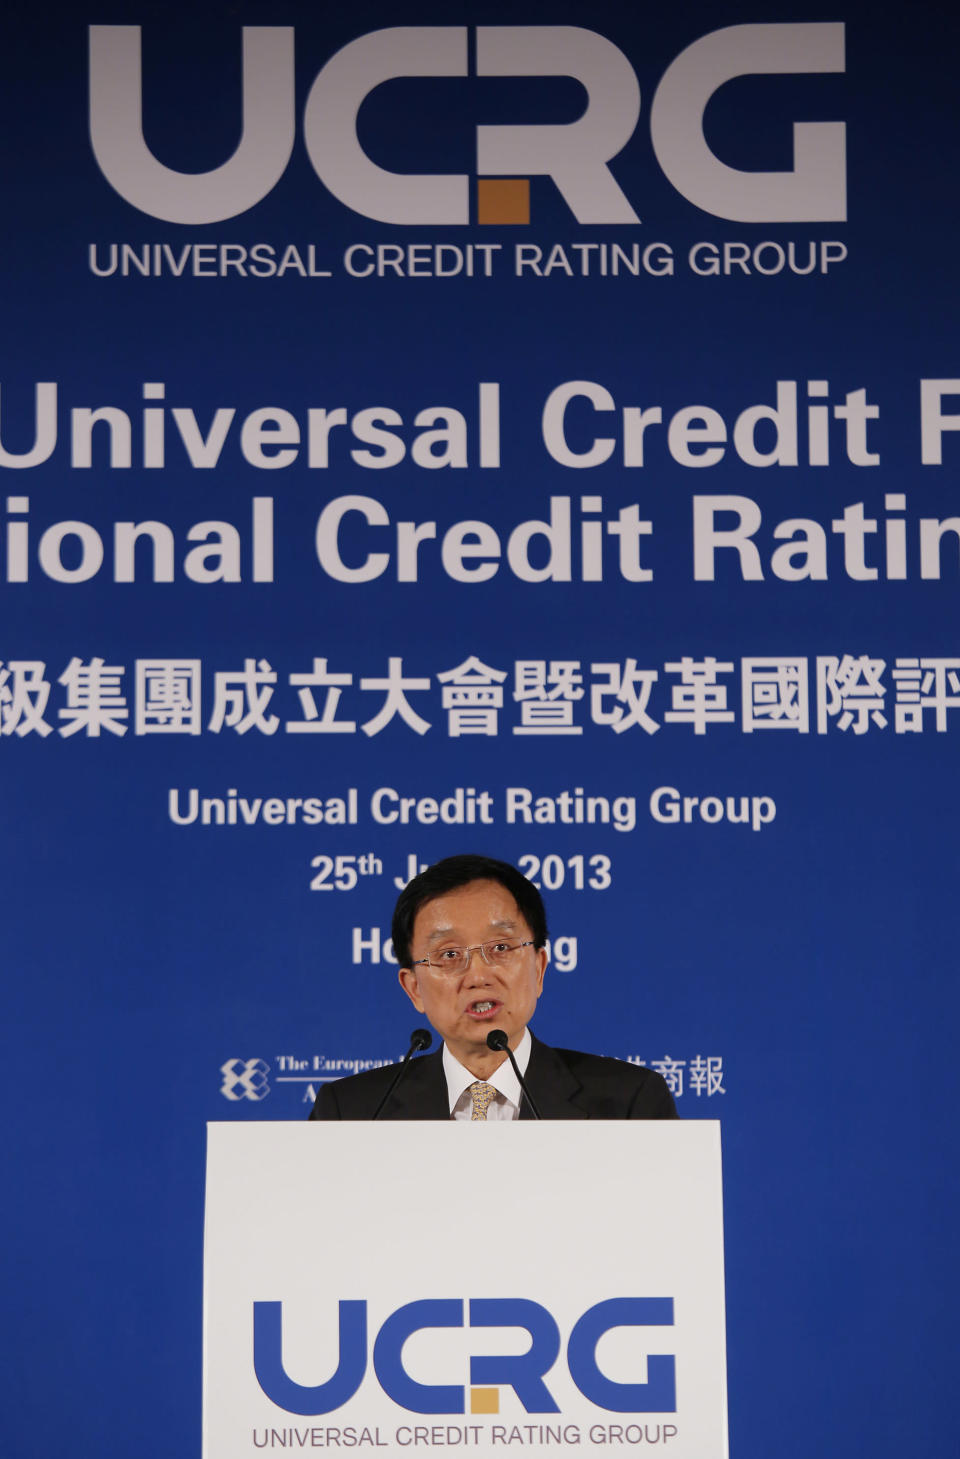 """Guan Jianzhong, chairman of the Universal Credit Rating Group, delivers his speech at the launch ceremony in Hong Kong Tuesday, June 25, 2013. Chinese credit rating company Dagong and its Russian and U.S. partners are launching a new venture to challenge the dominance of the major rating agencies that were blamed for contributing to the global financial crisis.Officials said Tuesday the Universal Credit Rating Group is aimed at """"providing some balance"""" to the industry, traditionally cornered by Moody's, Standard & Poor's and Fitch. (AP Photo/Vincent Yu)"""